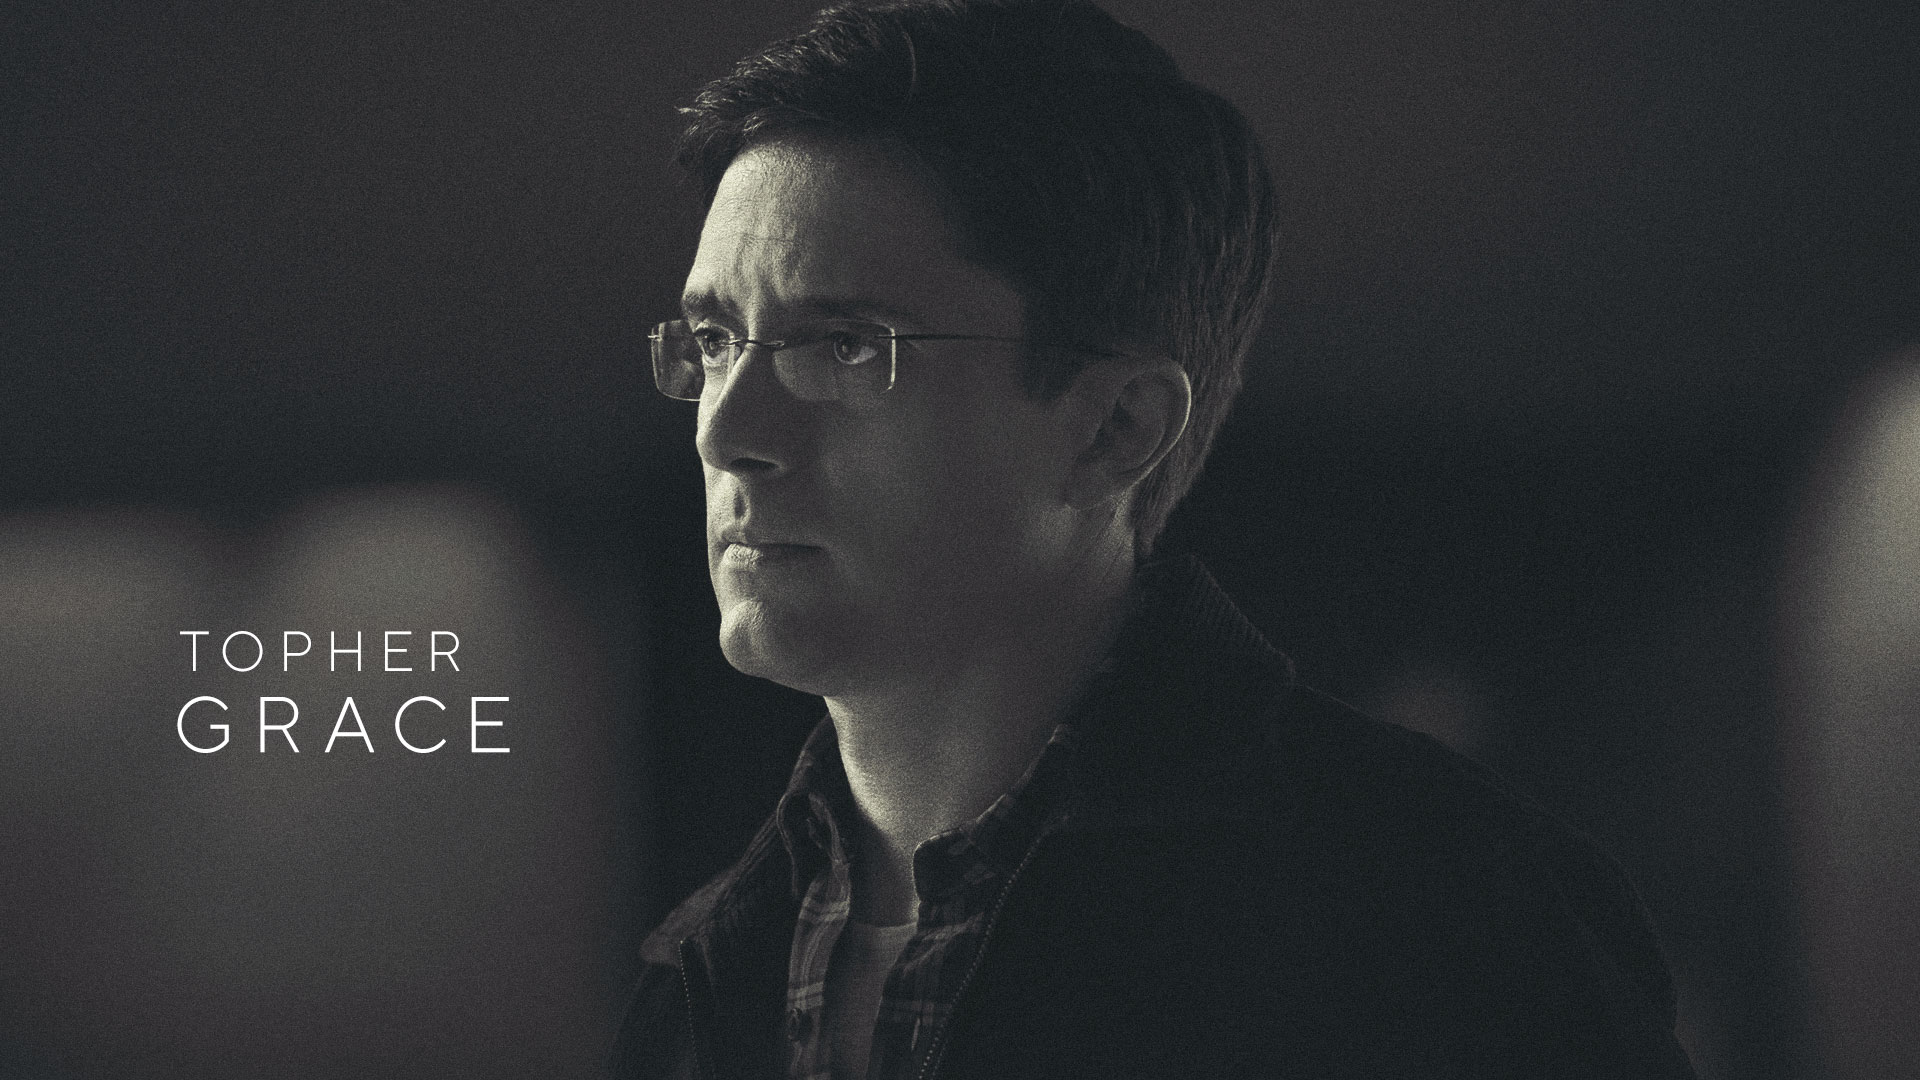 Topher Grace as Mark in